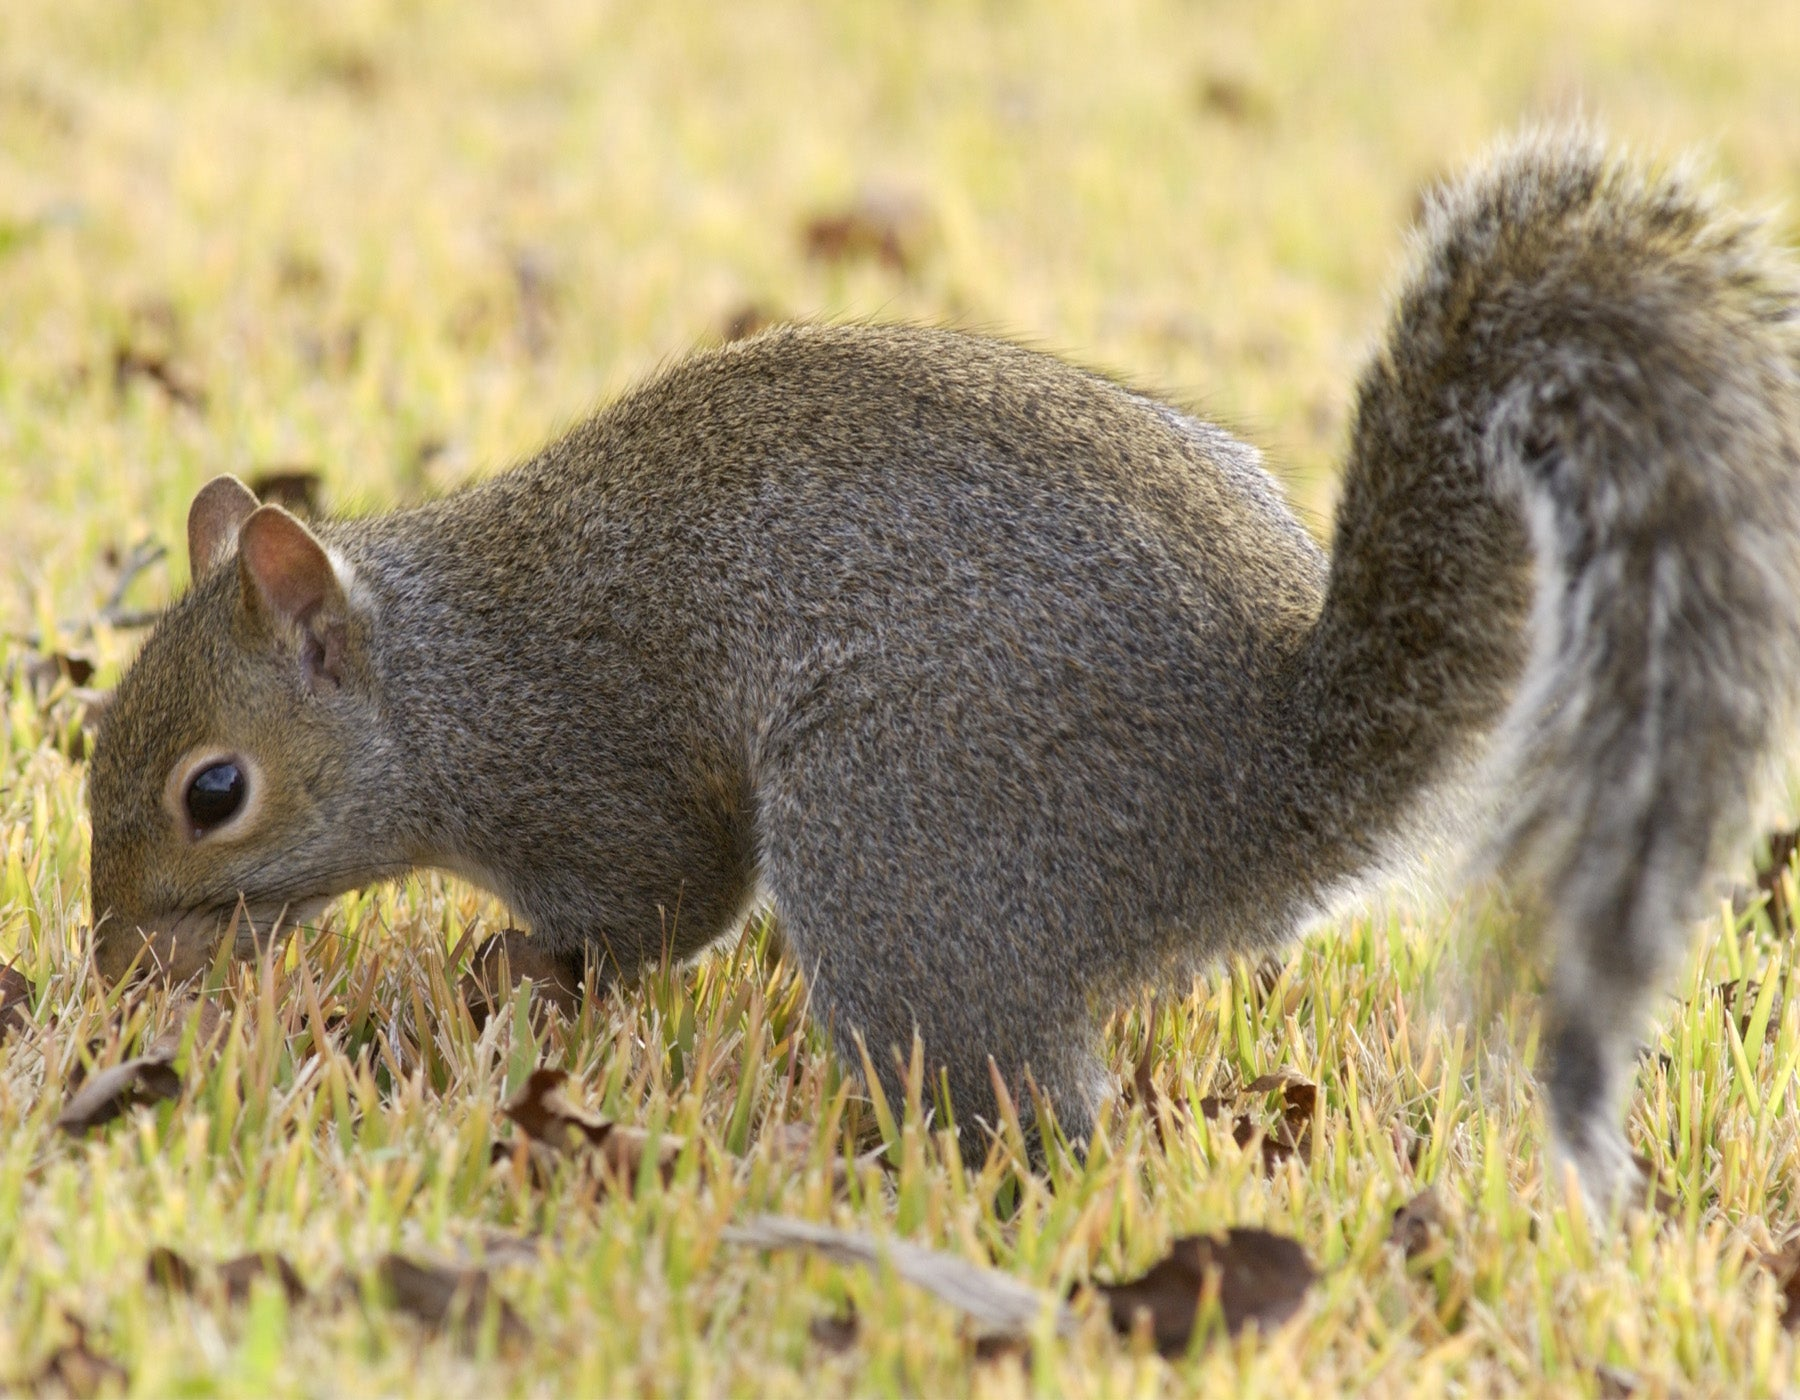 squirrel season opens may 28 missouri department of conservation